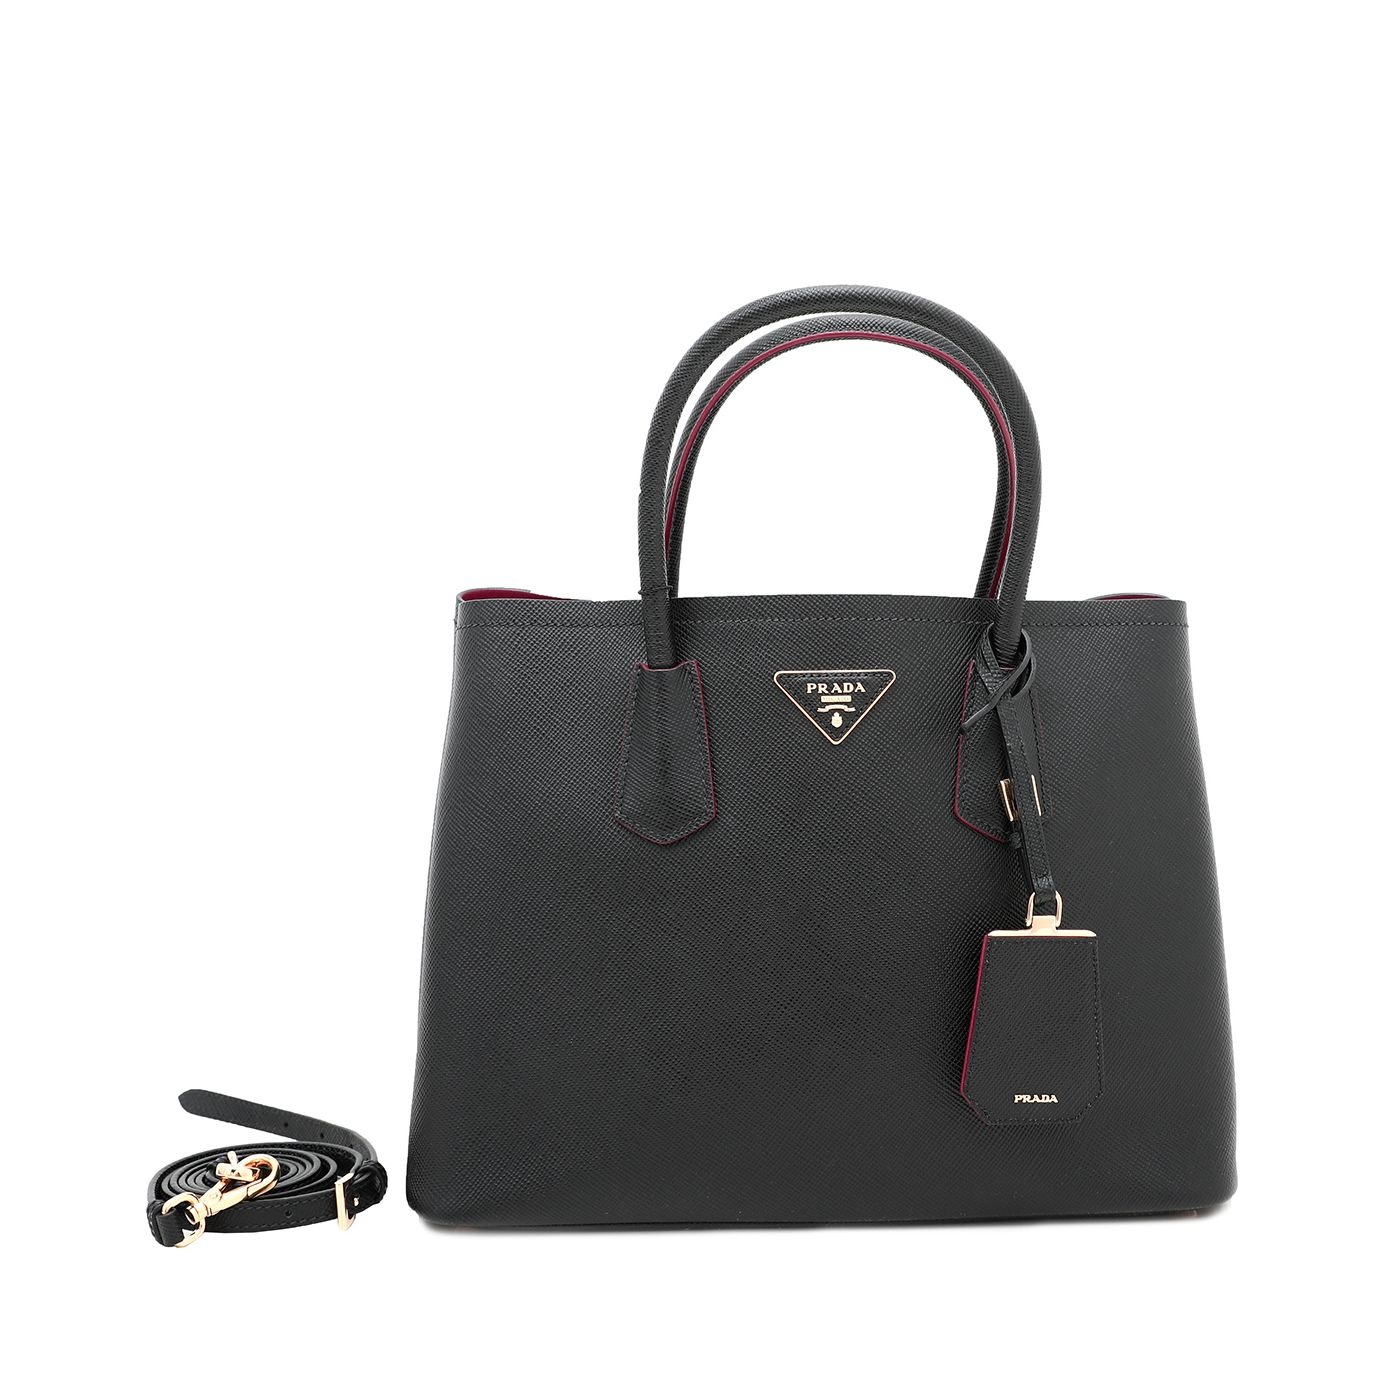 Prada Bicolor Double Bag Medium